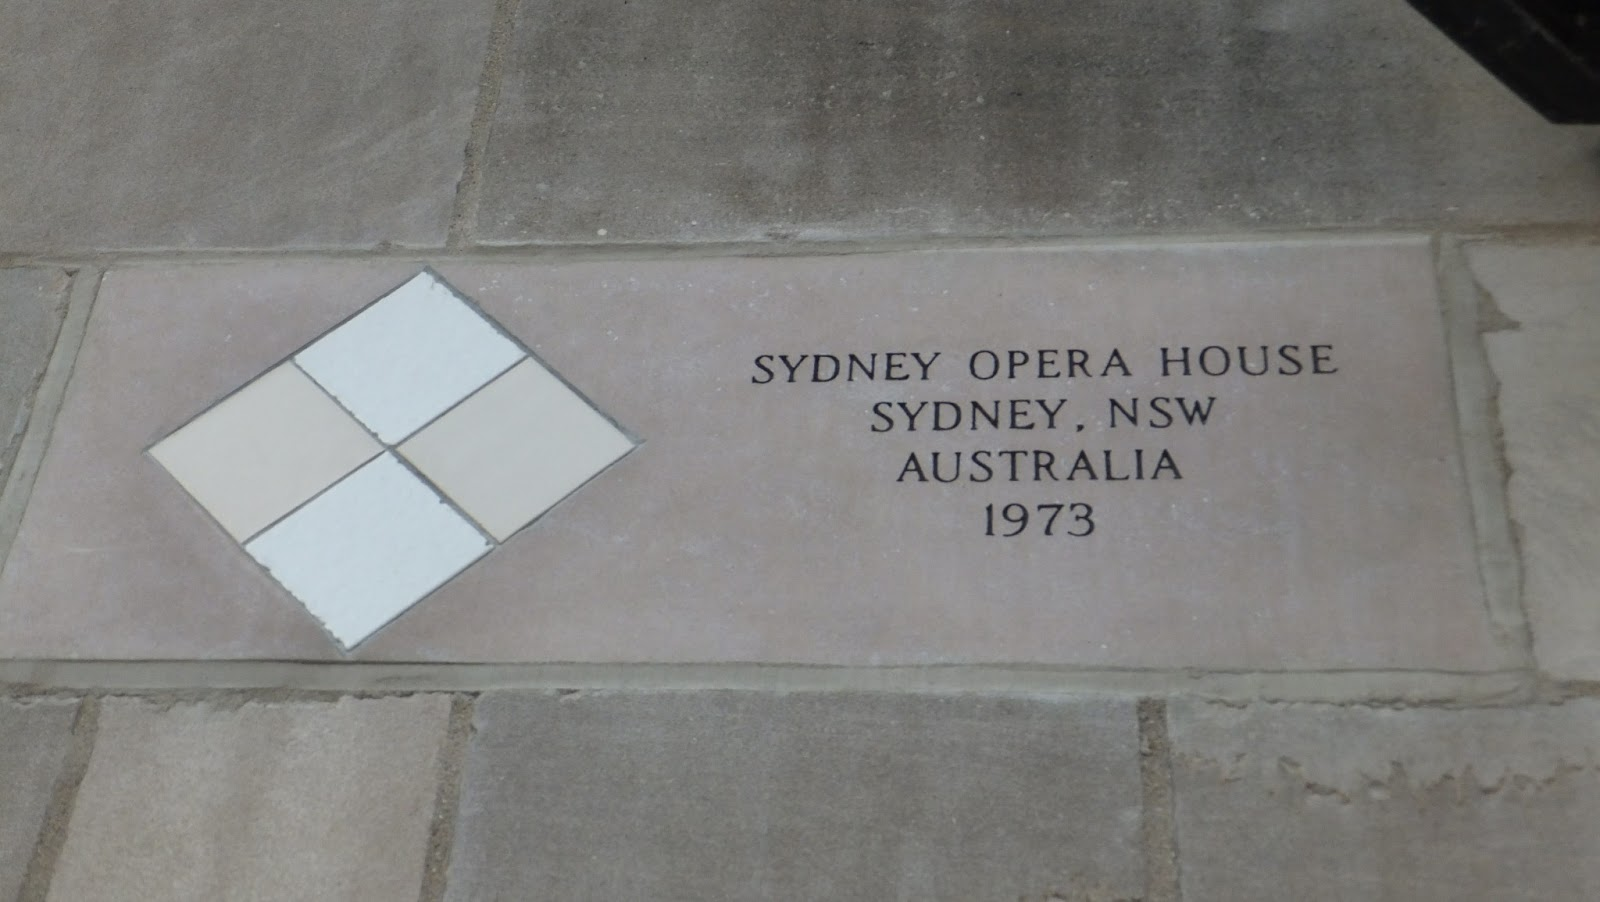 Opera House of Sidney, Muro del Chicago Tribune